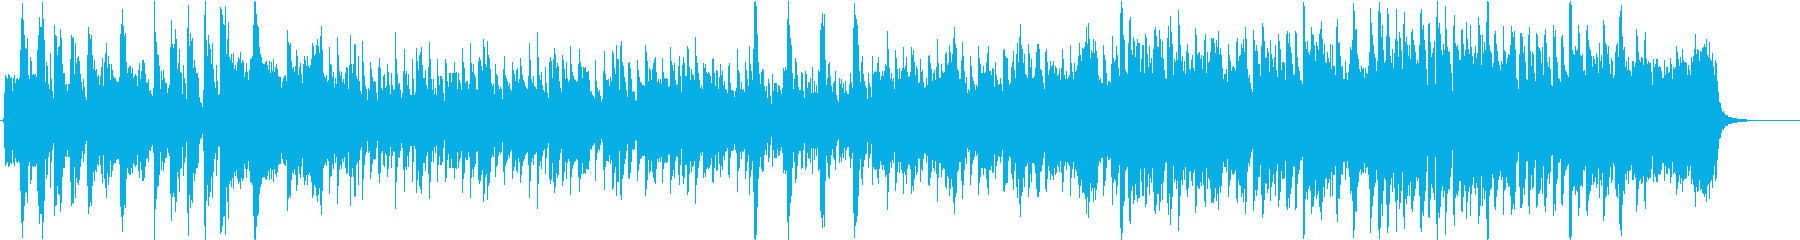 Bright, refreshing, slightly comical Japanese style song's reproduced waveform